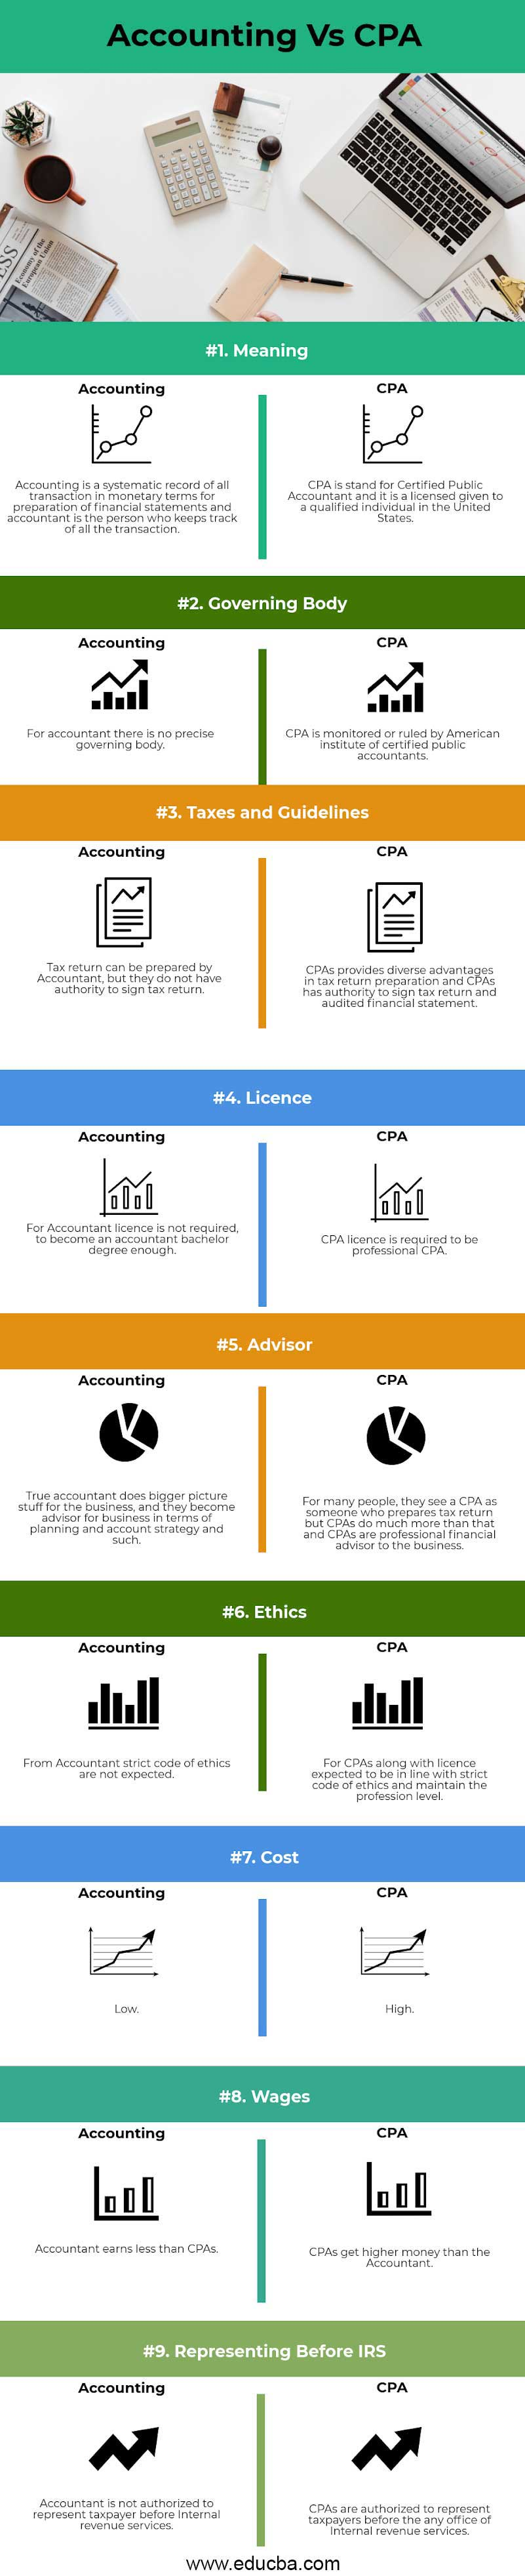 Accounting vs CPA info